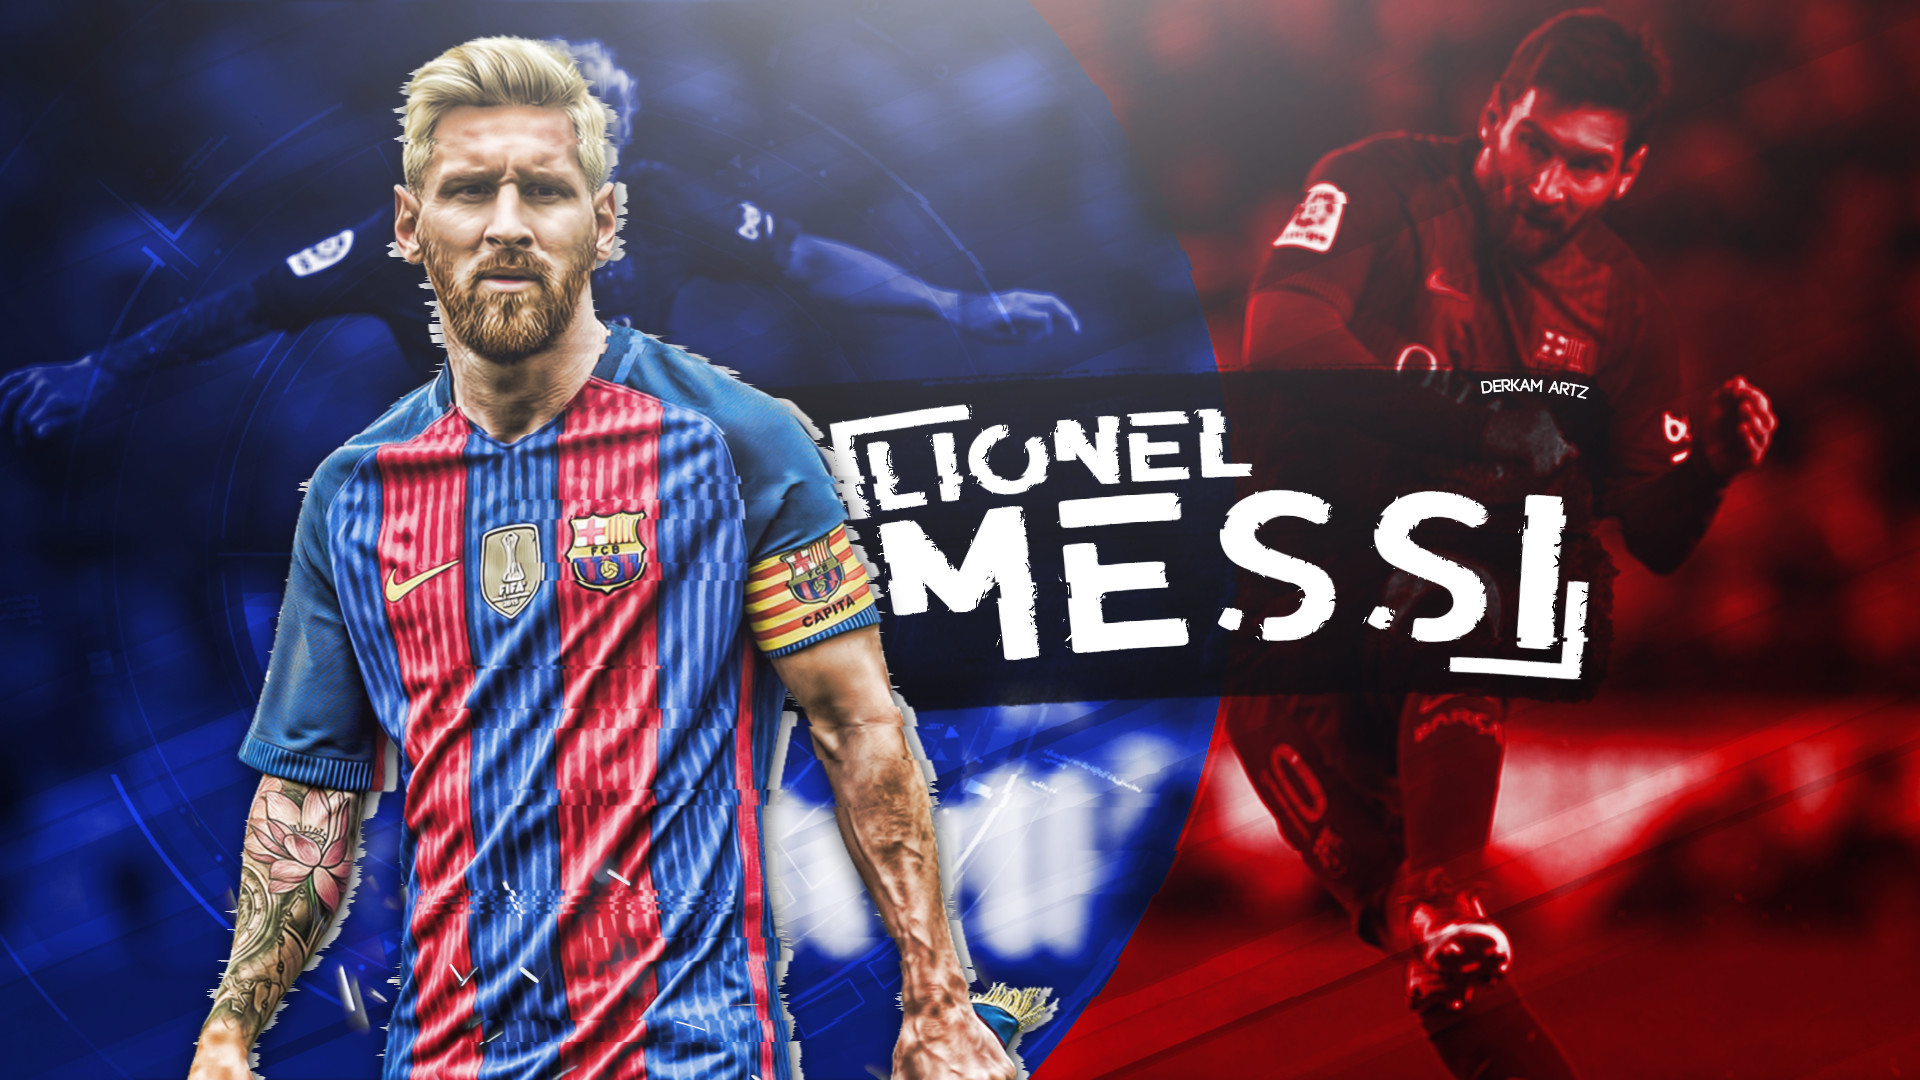 1920x1080  Best Lionel Messi HD 2018 Photos in High Quality, Elvis Monfort,  170.26 Kb